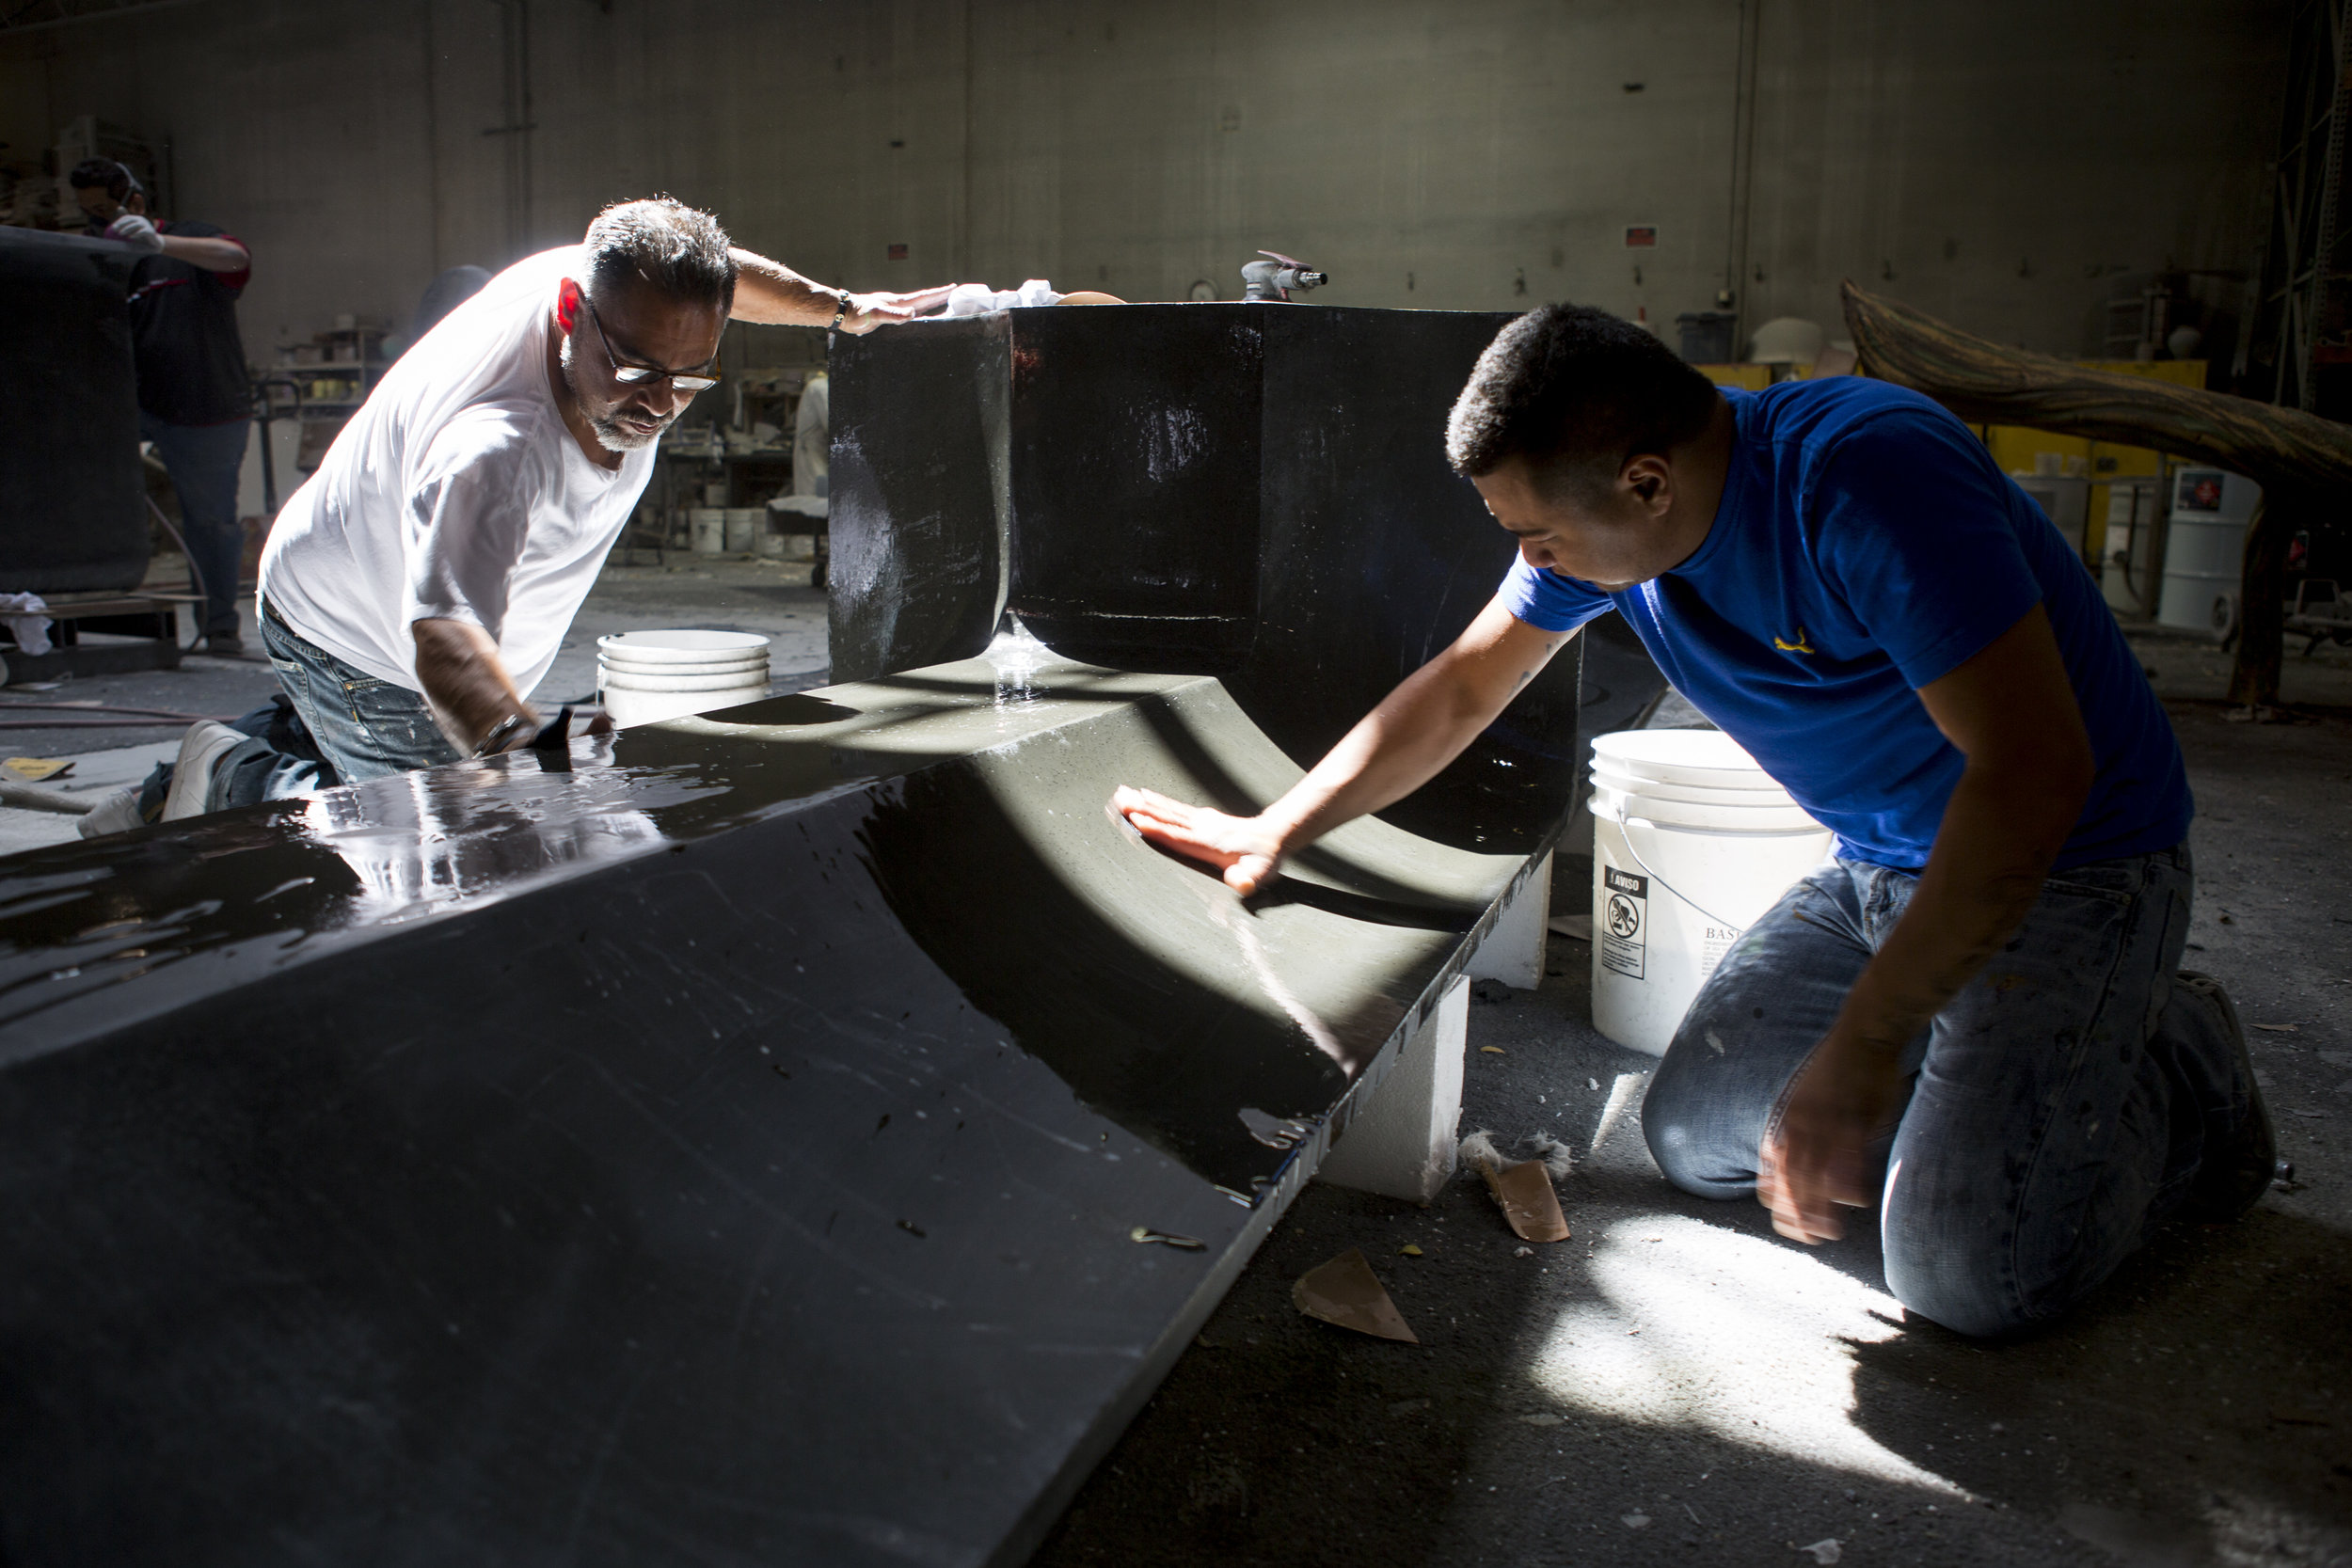 Oscar Perez-Casiano, right, and Carlos Barragan work on finishing a piece Gist Specialties, which makes custom wood and metal fabrications, in North Las Vegas on Wednesday, May 10, 2017. Patrick Connolly Las Vegas Review-Journal @PConnPie